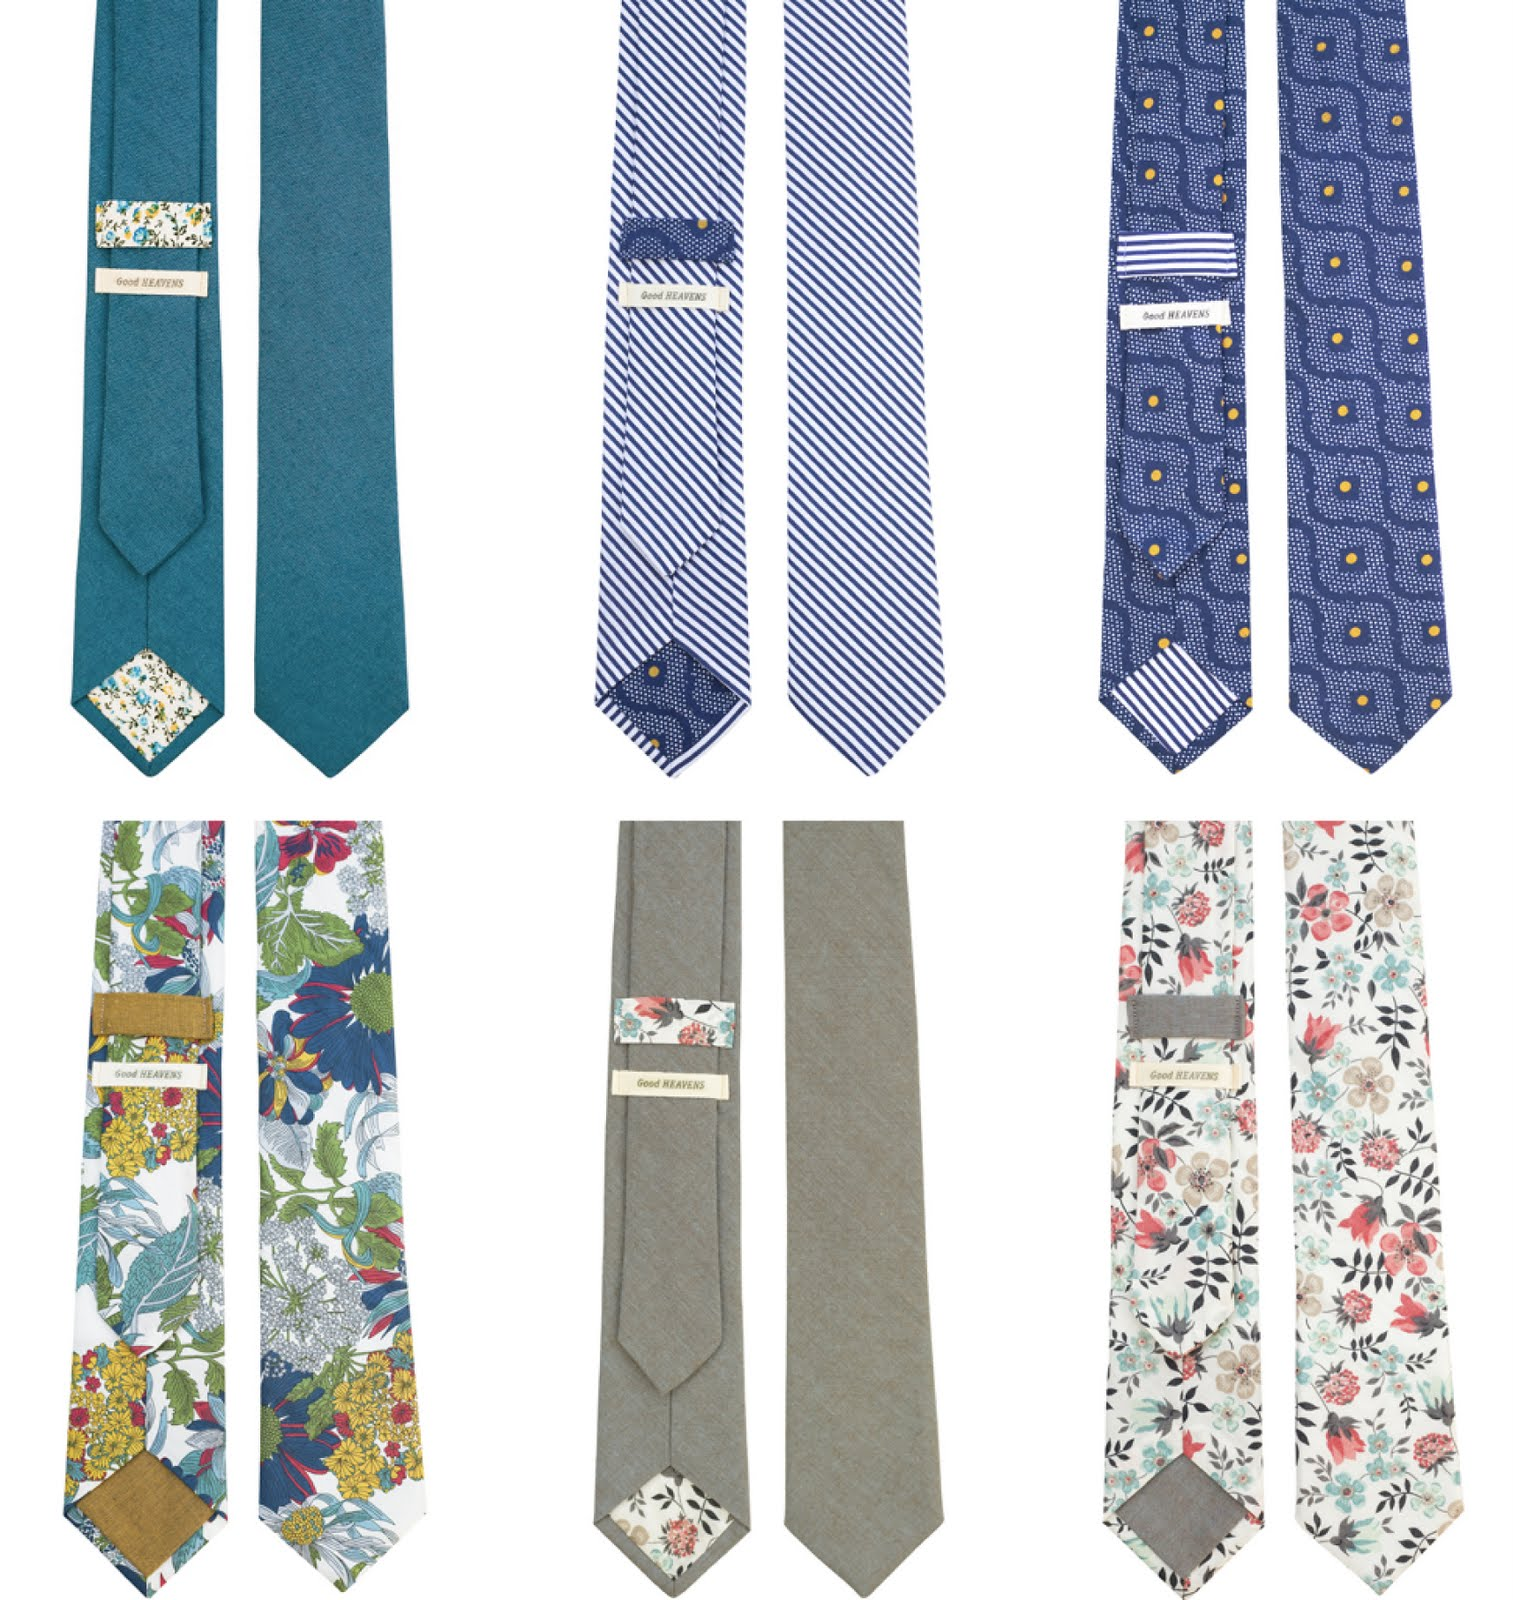 Love Good Heavens Neckties! Solid, or Print- it adds a little someting special to your wedding day!